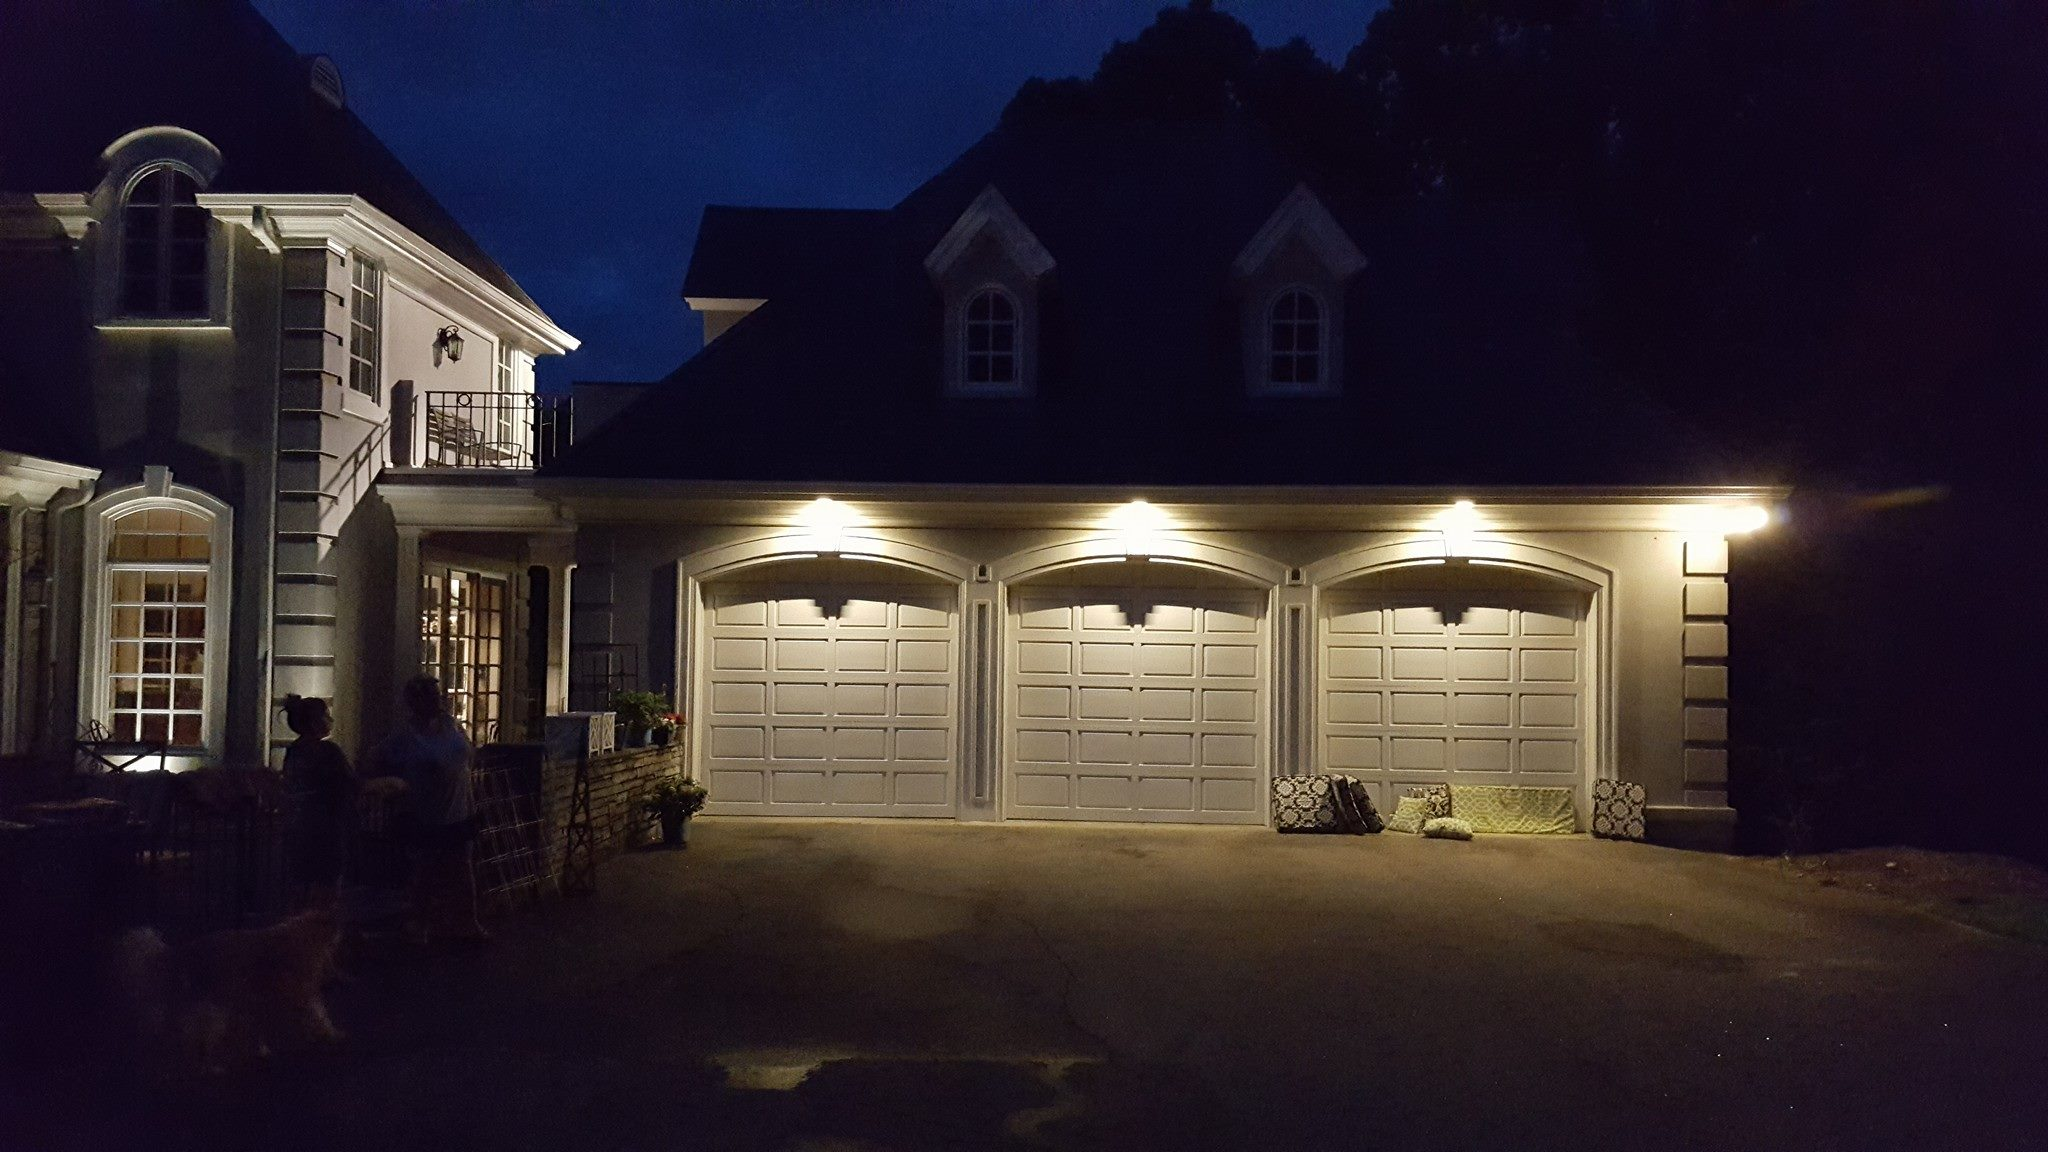 Above Is An Example Of Outdoor Lighting Customization. As You Can See, The  Garage Is Completely Illuminated By Way Of Elegant Lighting.